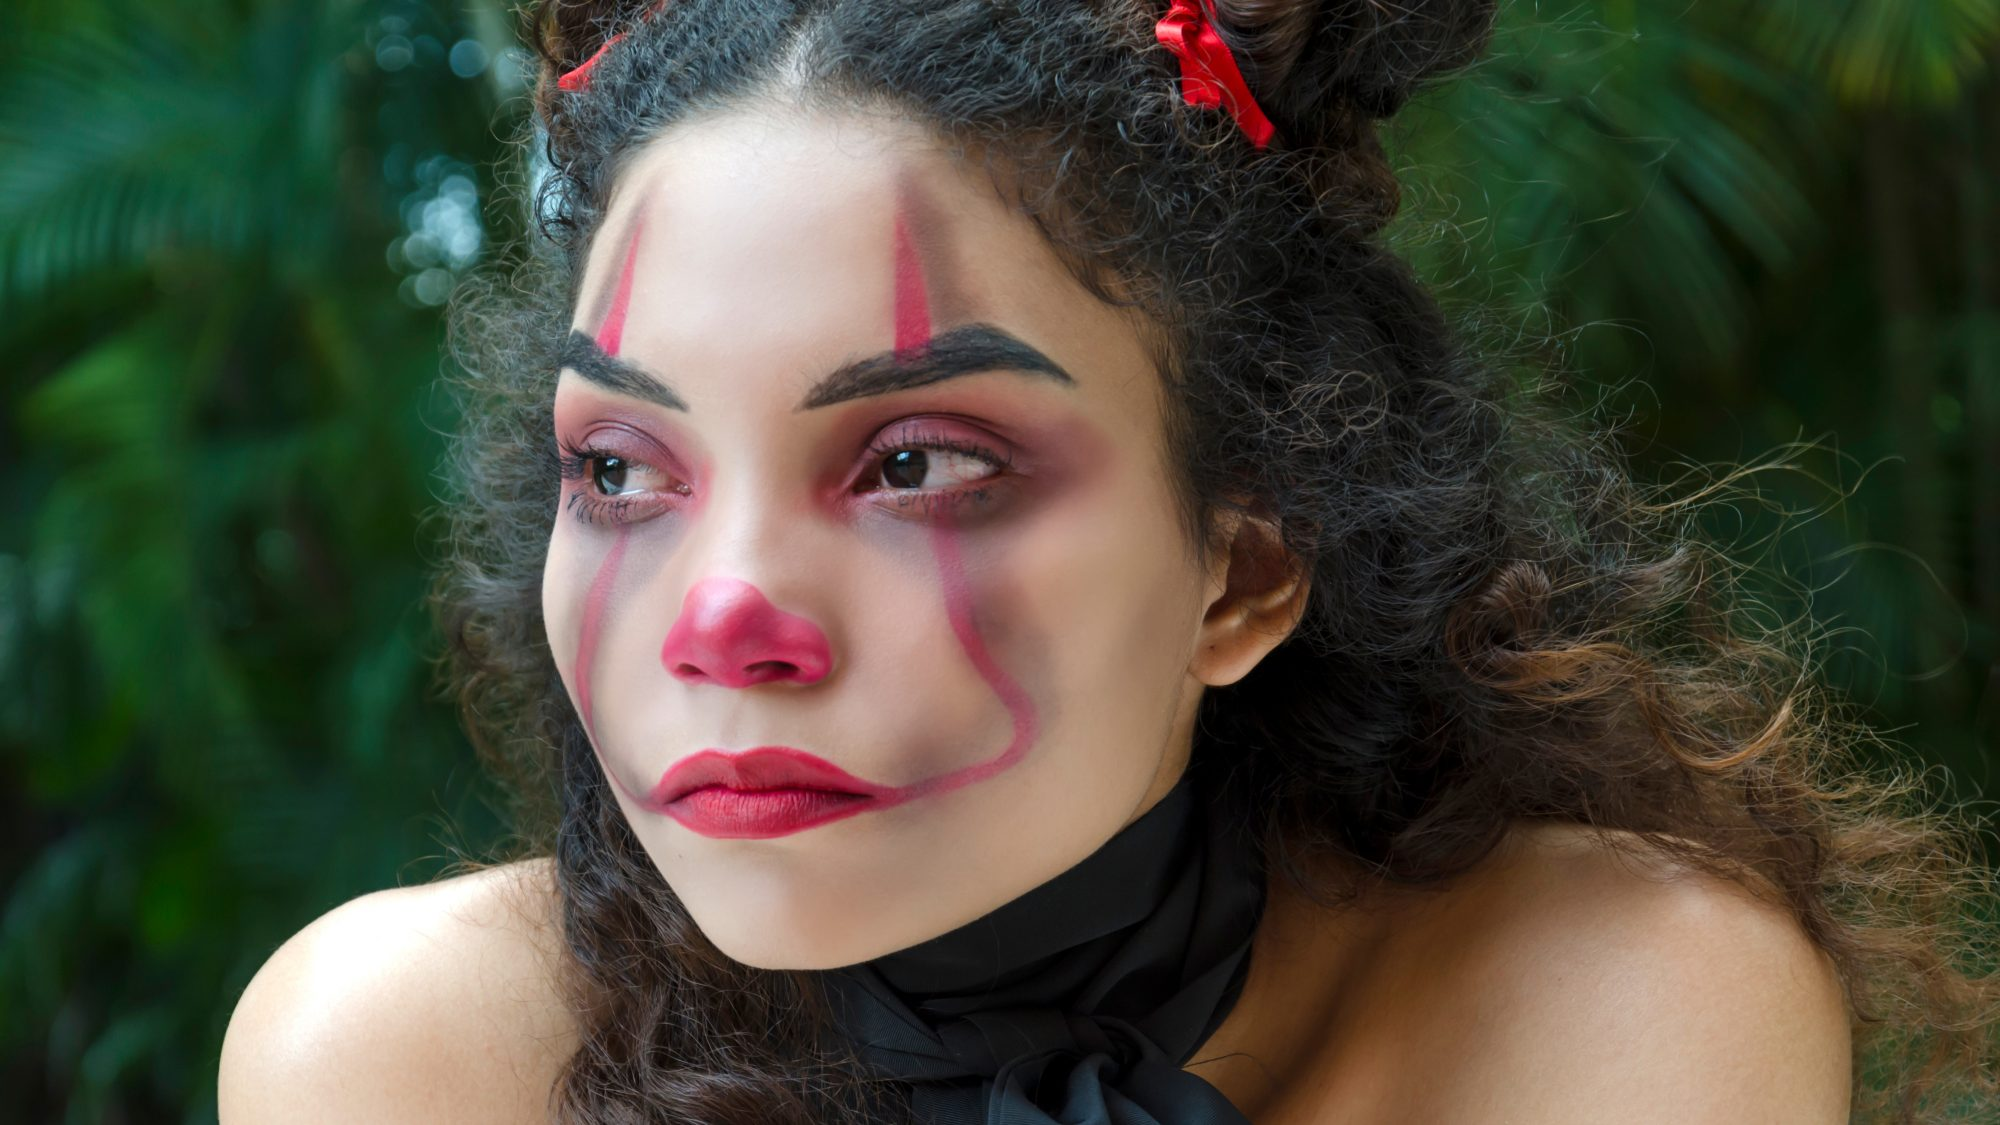 Unique Halloween Makeup Ideas.4 Easy Halloween Makeup Ideas And Tutorial Videos Real Simple